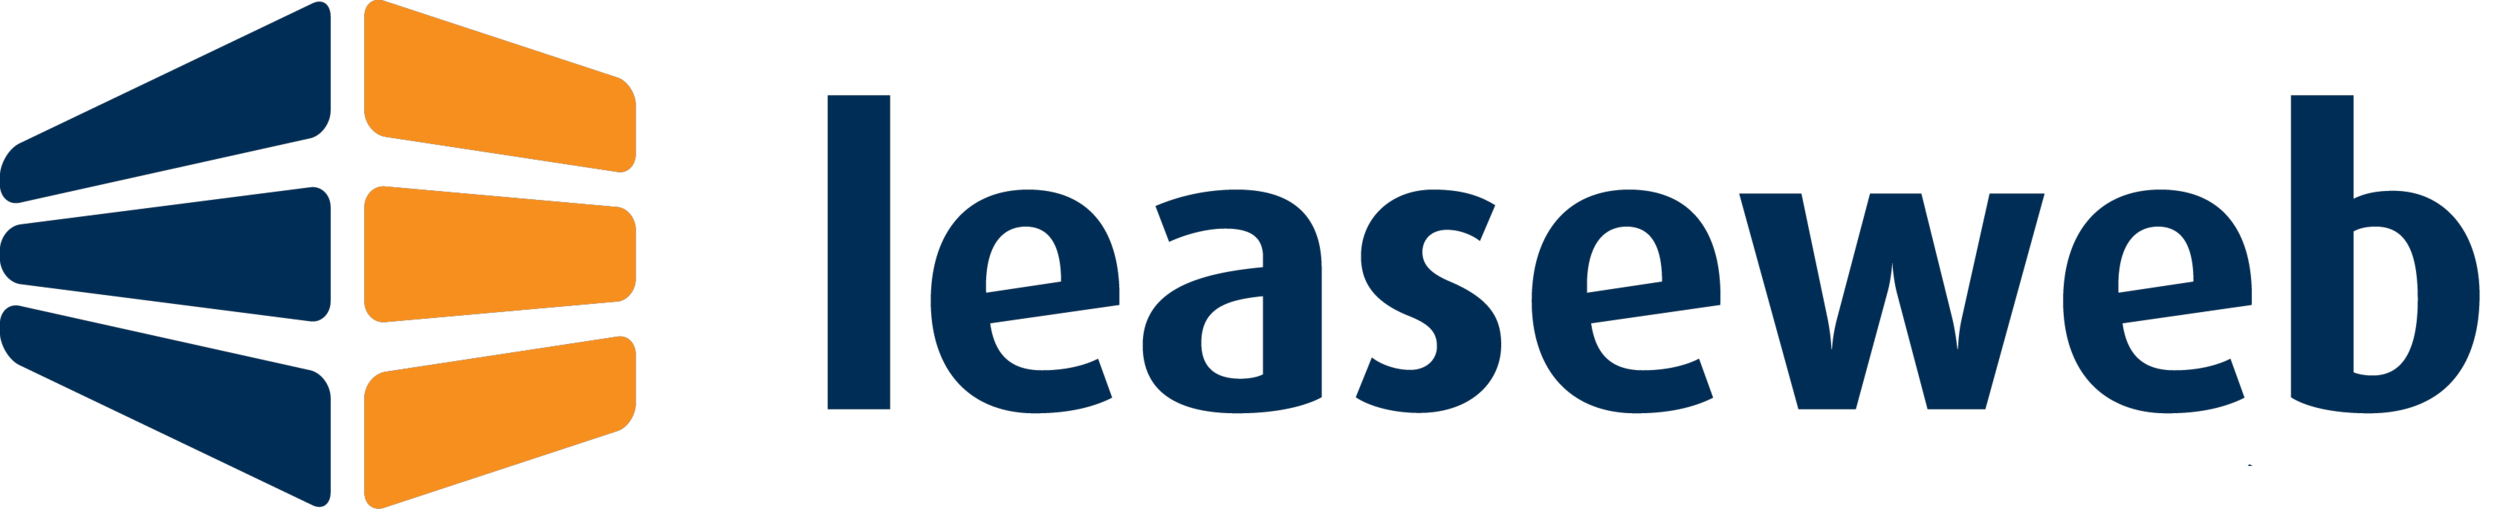 leaseweb_logo.png